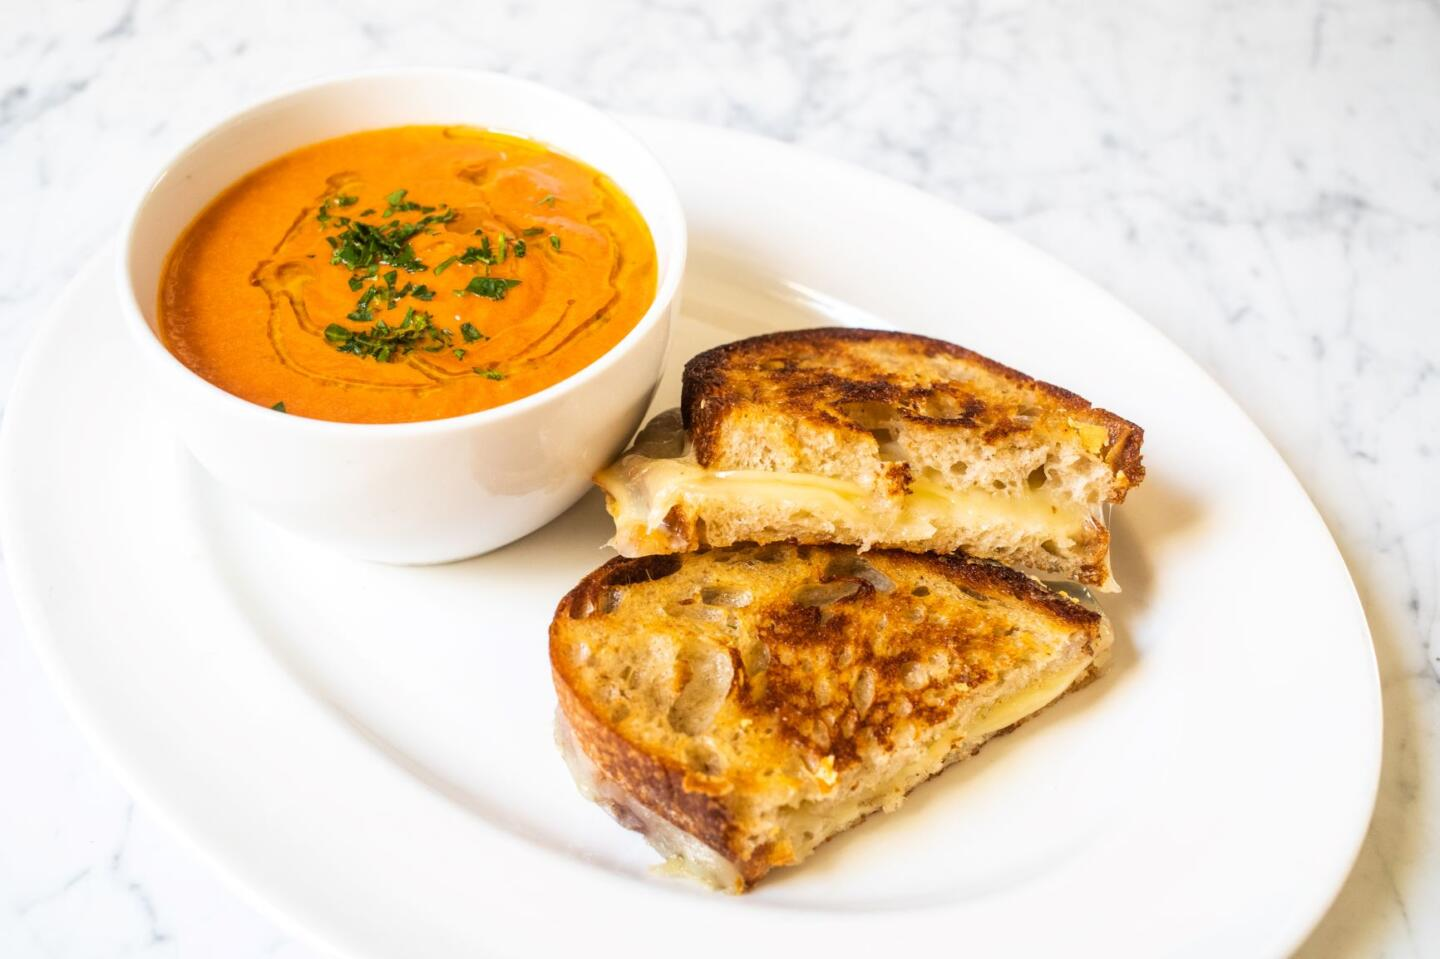 Herbed Tomato Soup with Grilled Cheese from Summer House